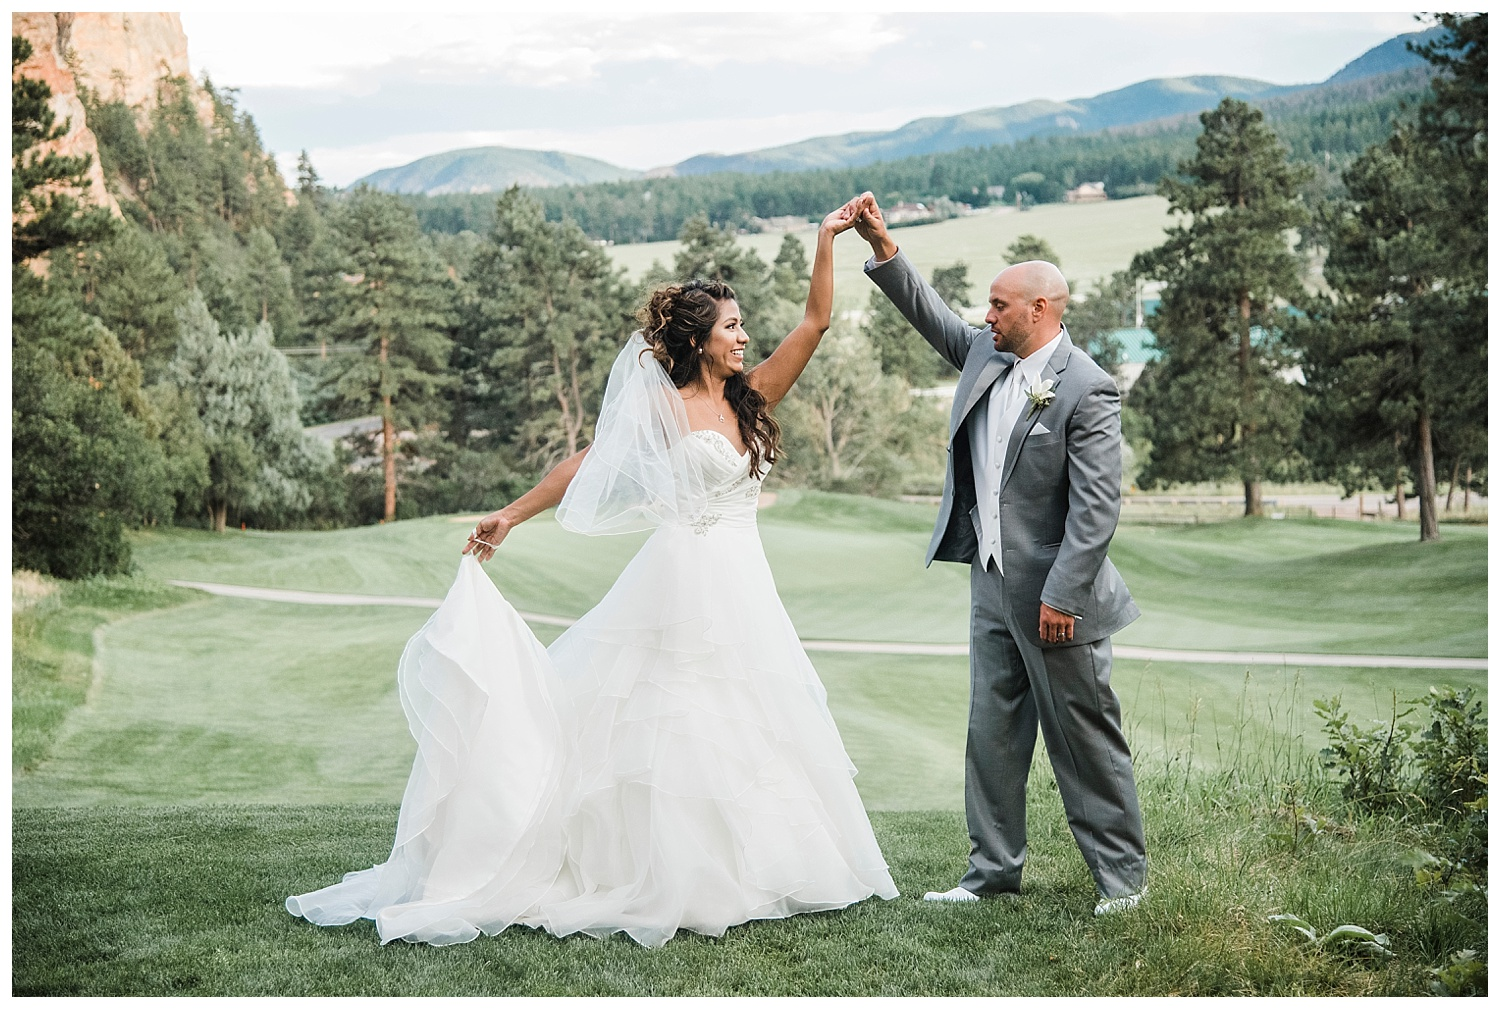 Perry_Park_Country_Club_Wedding_Larkspur_Colorado_Apollo_Fields_38.jpg